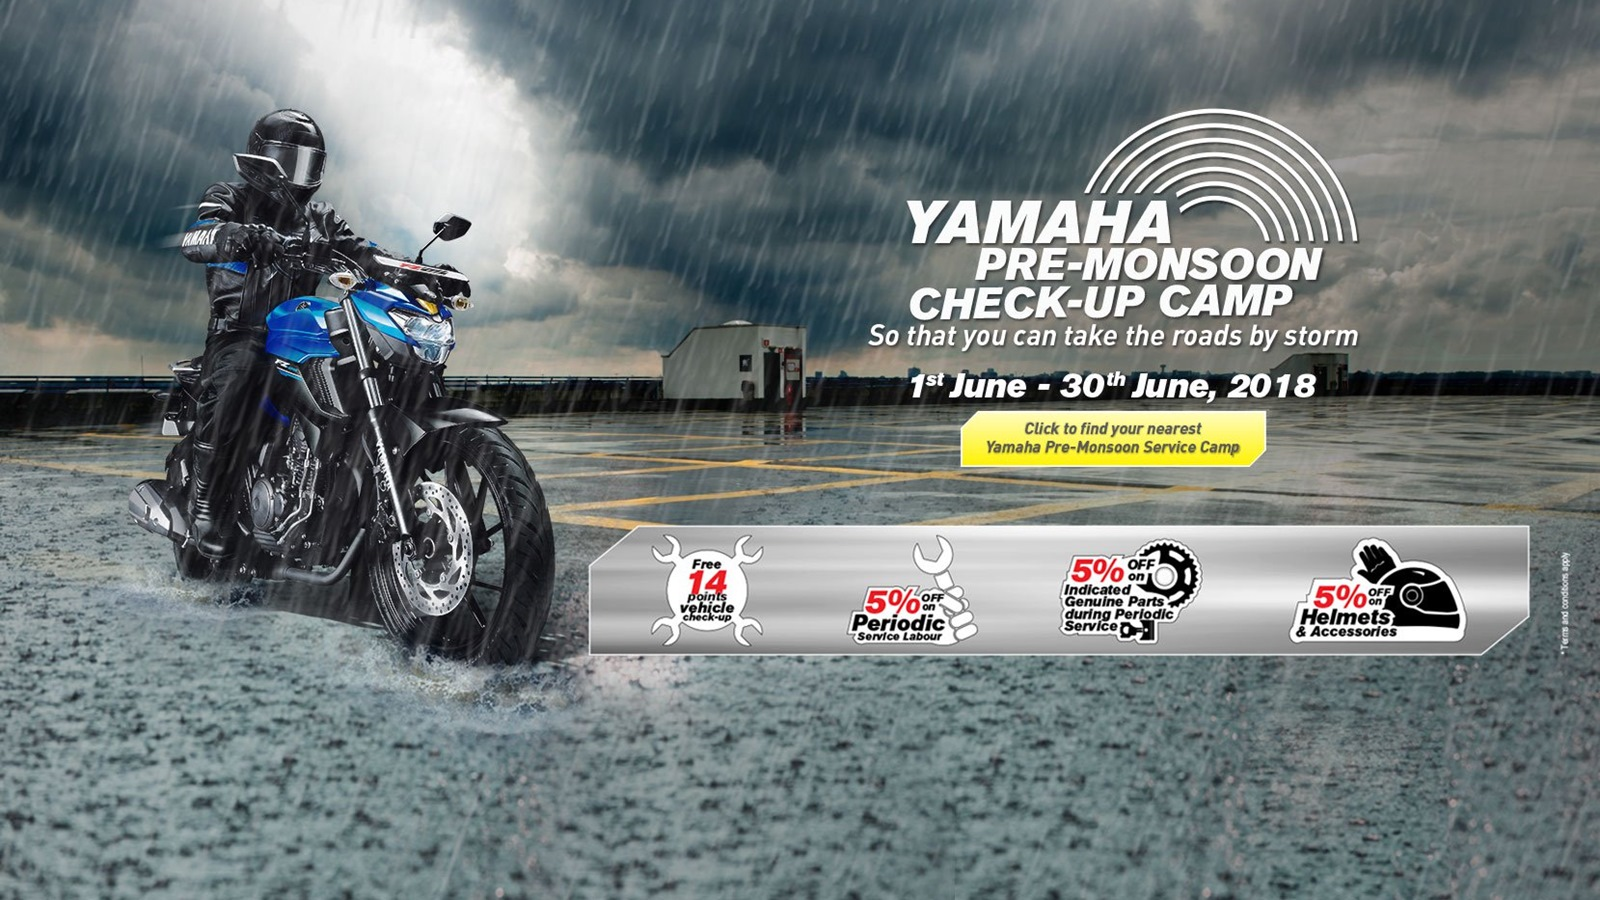 Yamaha organises Pre-Monsoon Check-up Camps